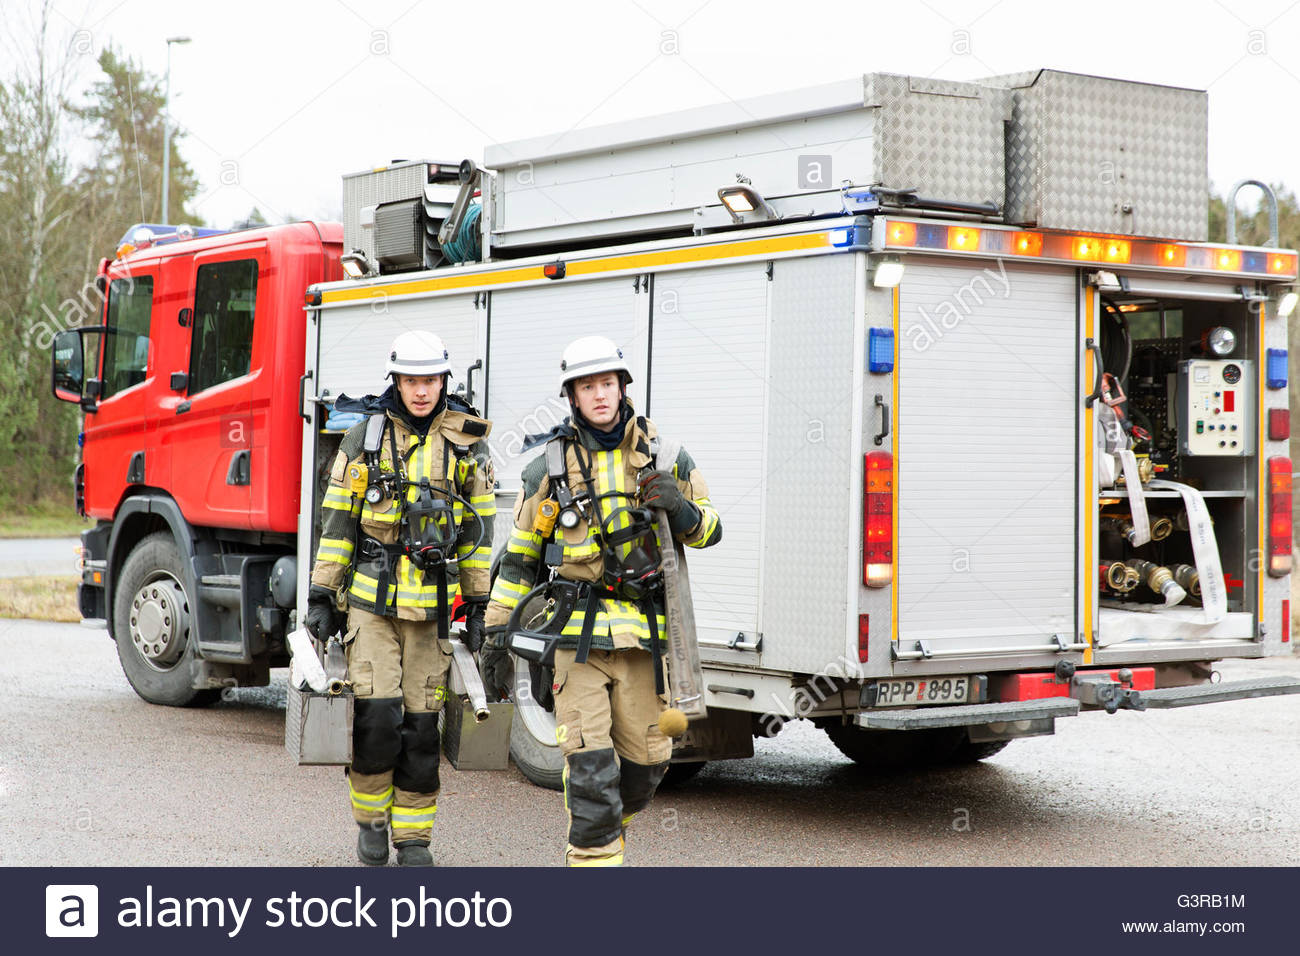 Sweden, Sodermanland, Fire-fighters by fire engine - Stock Image